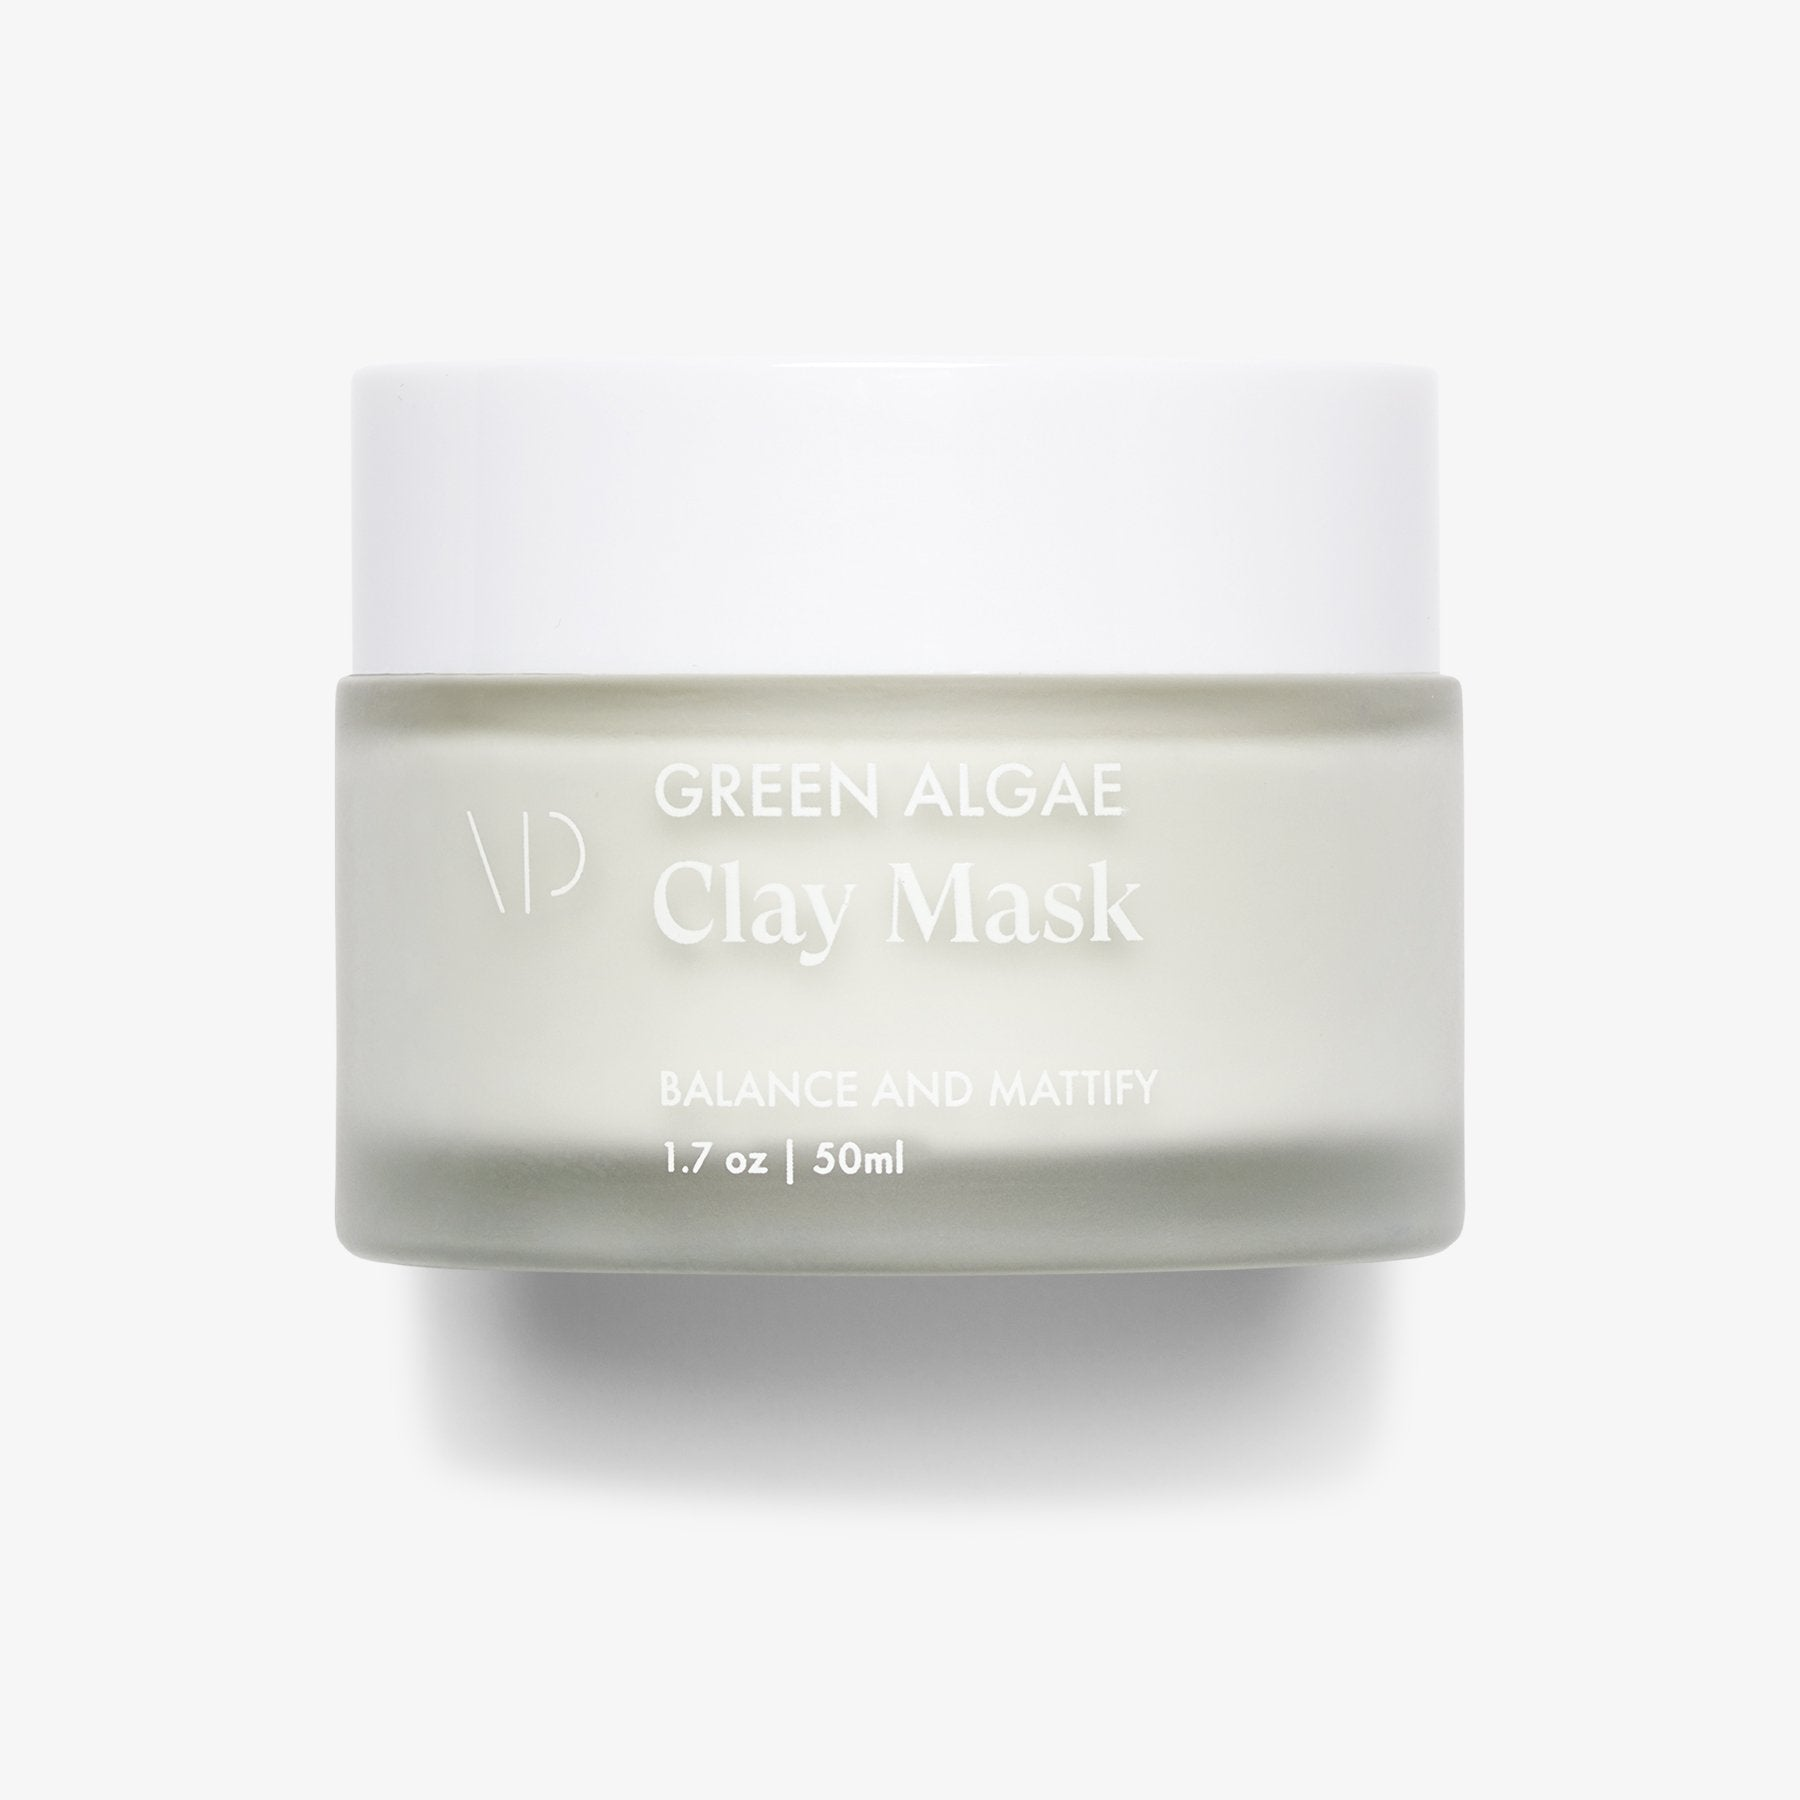 Green Algae Clay Mask | Balance & Mattify